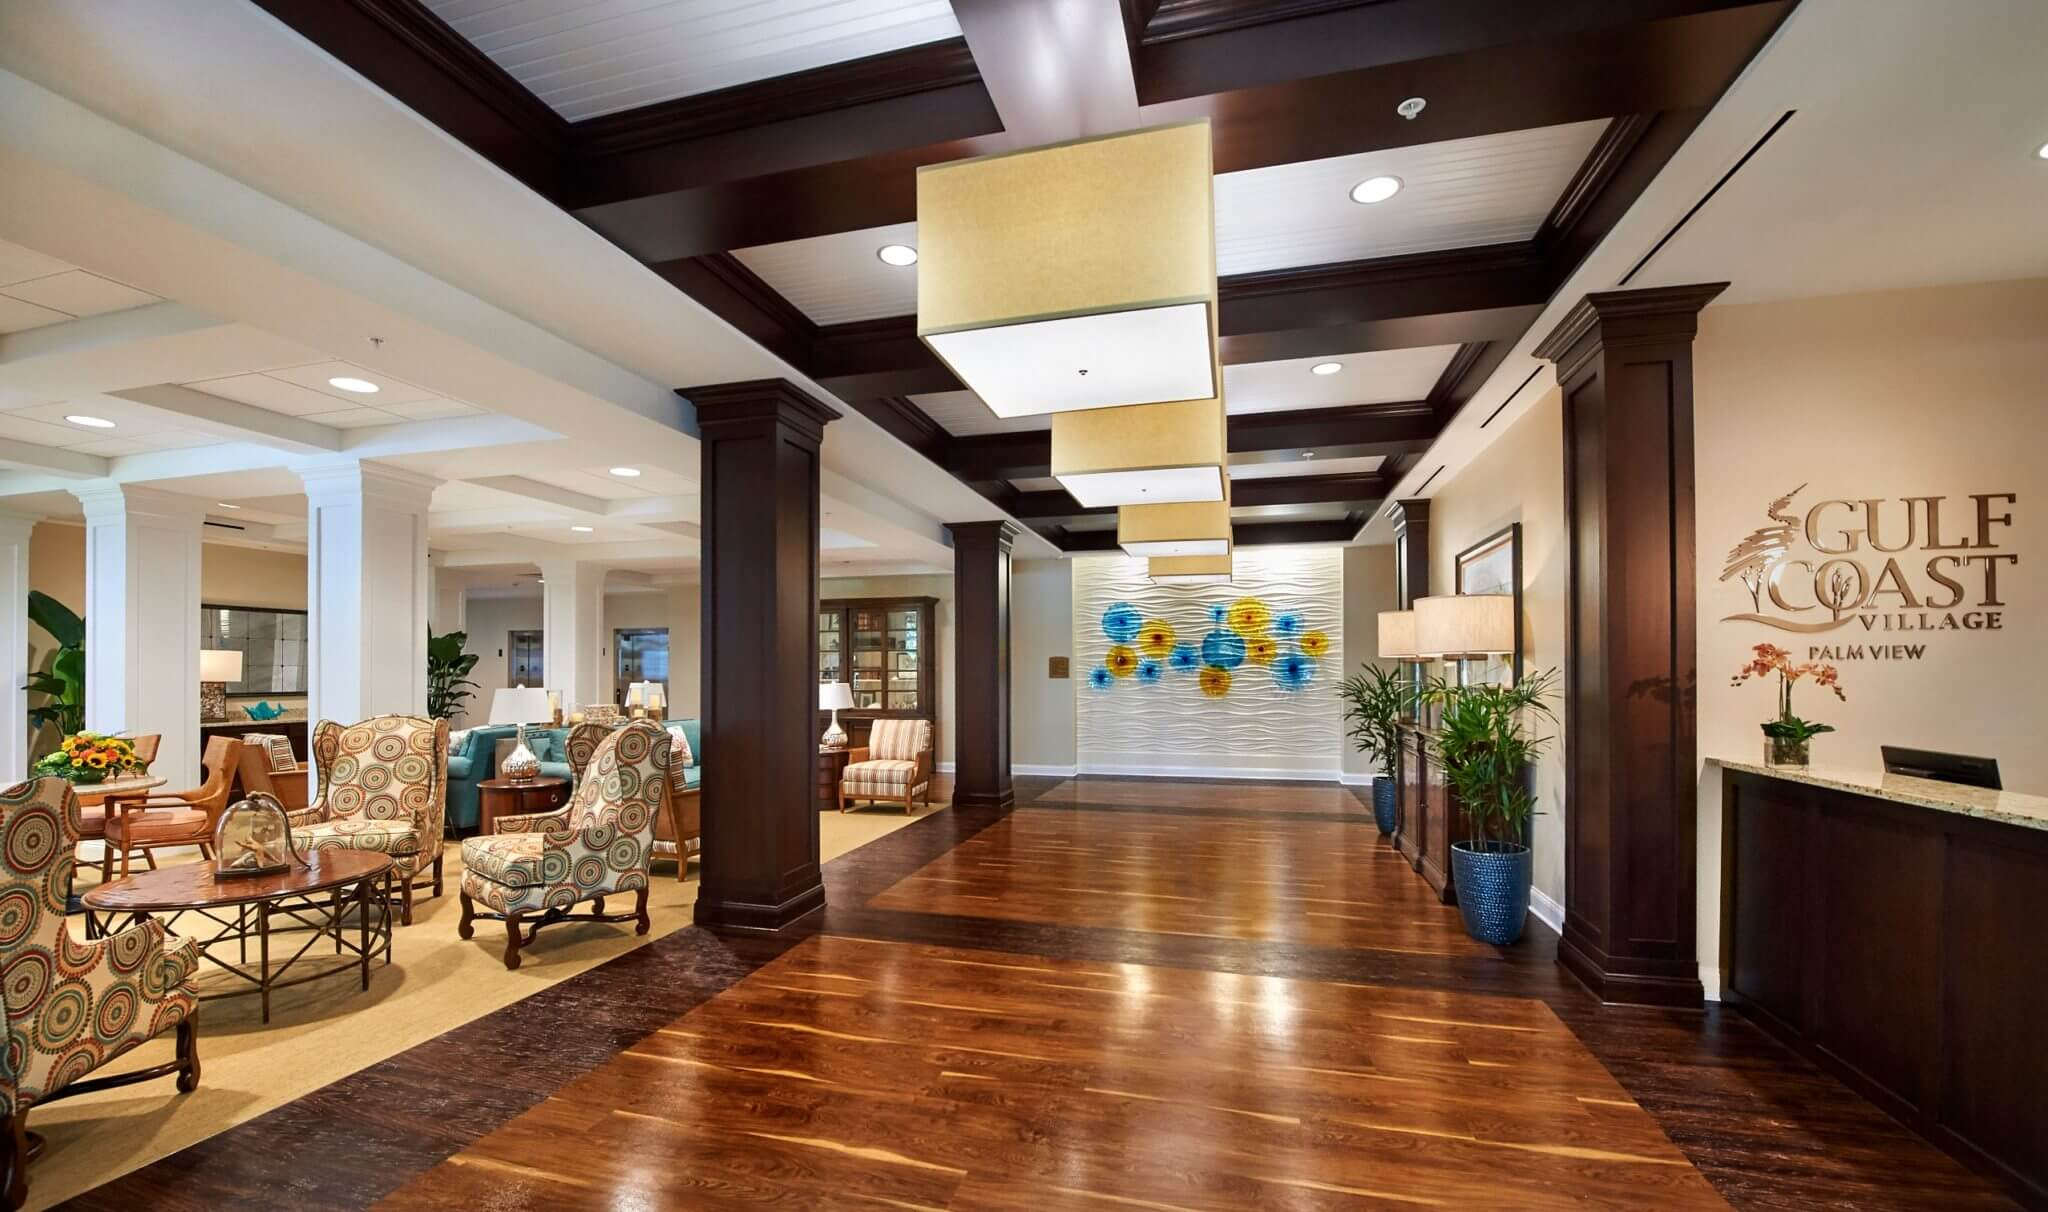 AG-Arch-senior-living-Gulf Coast Village-05